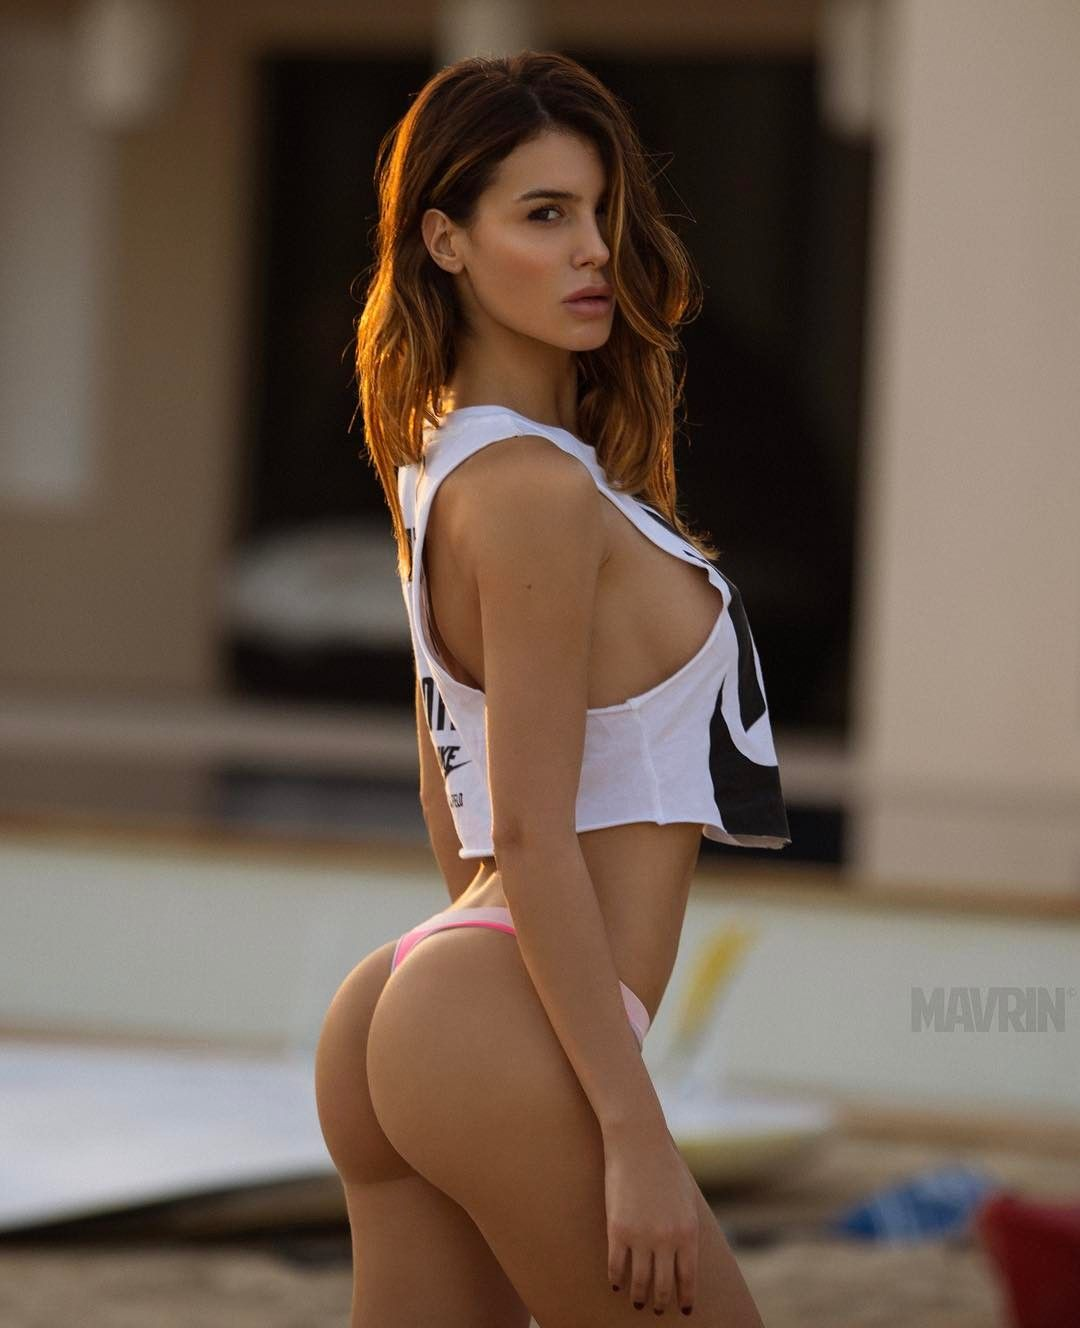 Booty Silvia Caruso naked (45 photo), Topless, Leaked, Feet, legs 2019